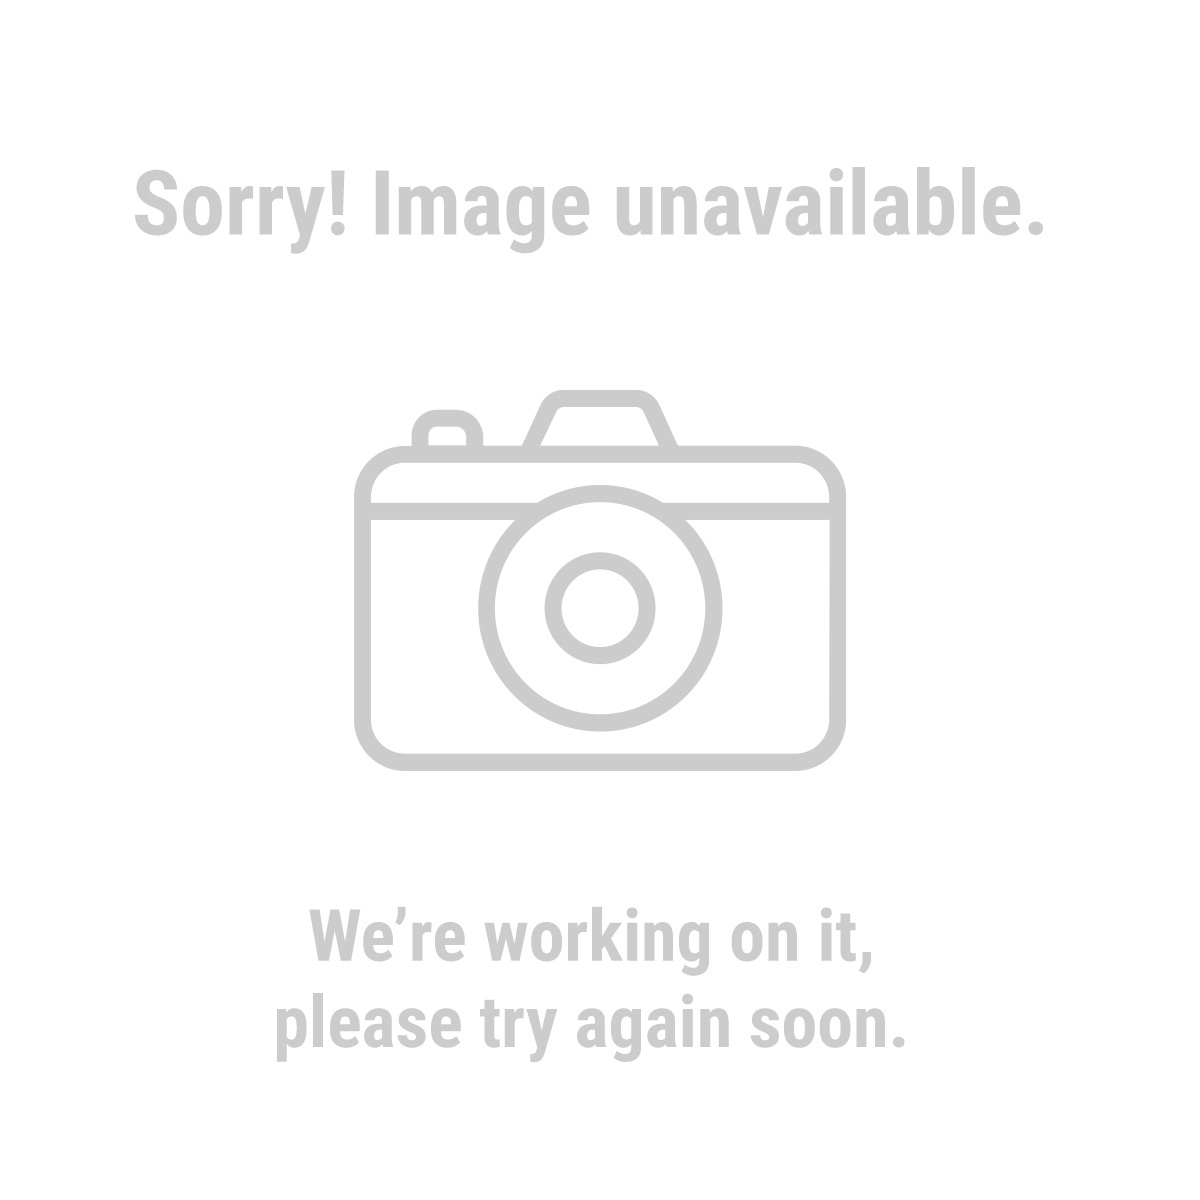 Drill Master 62868 18 Volt 3/8 in. Cordless Drill/Driver With Keyless Chuck, 21 Clutch Settings